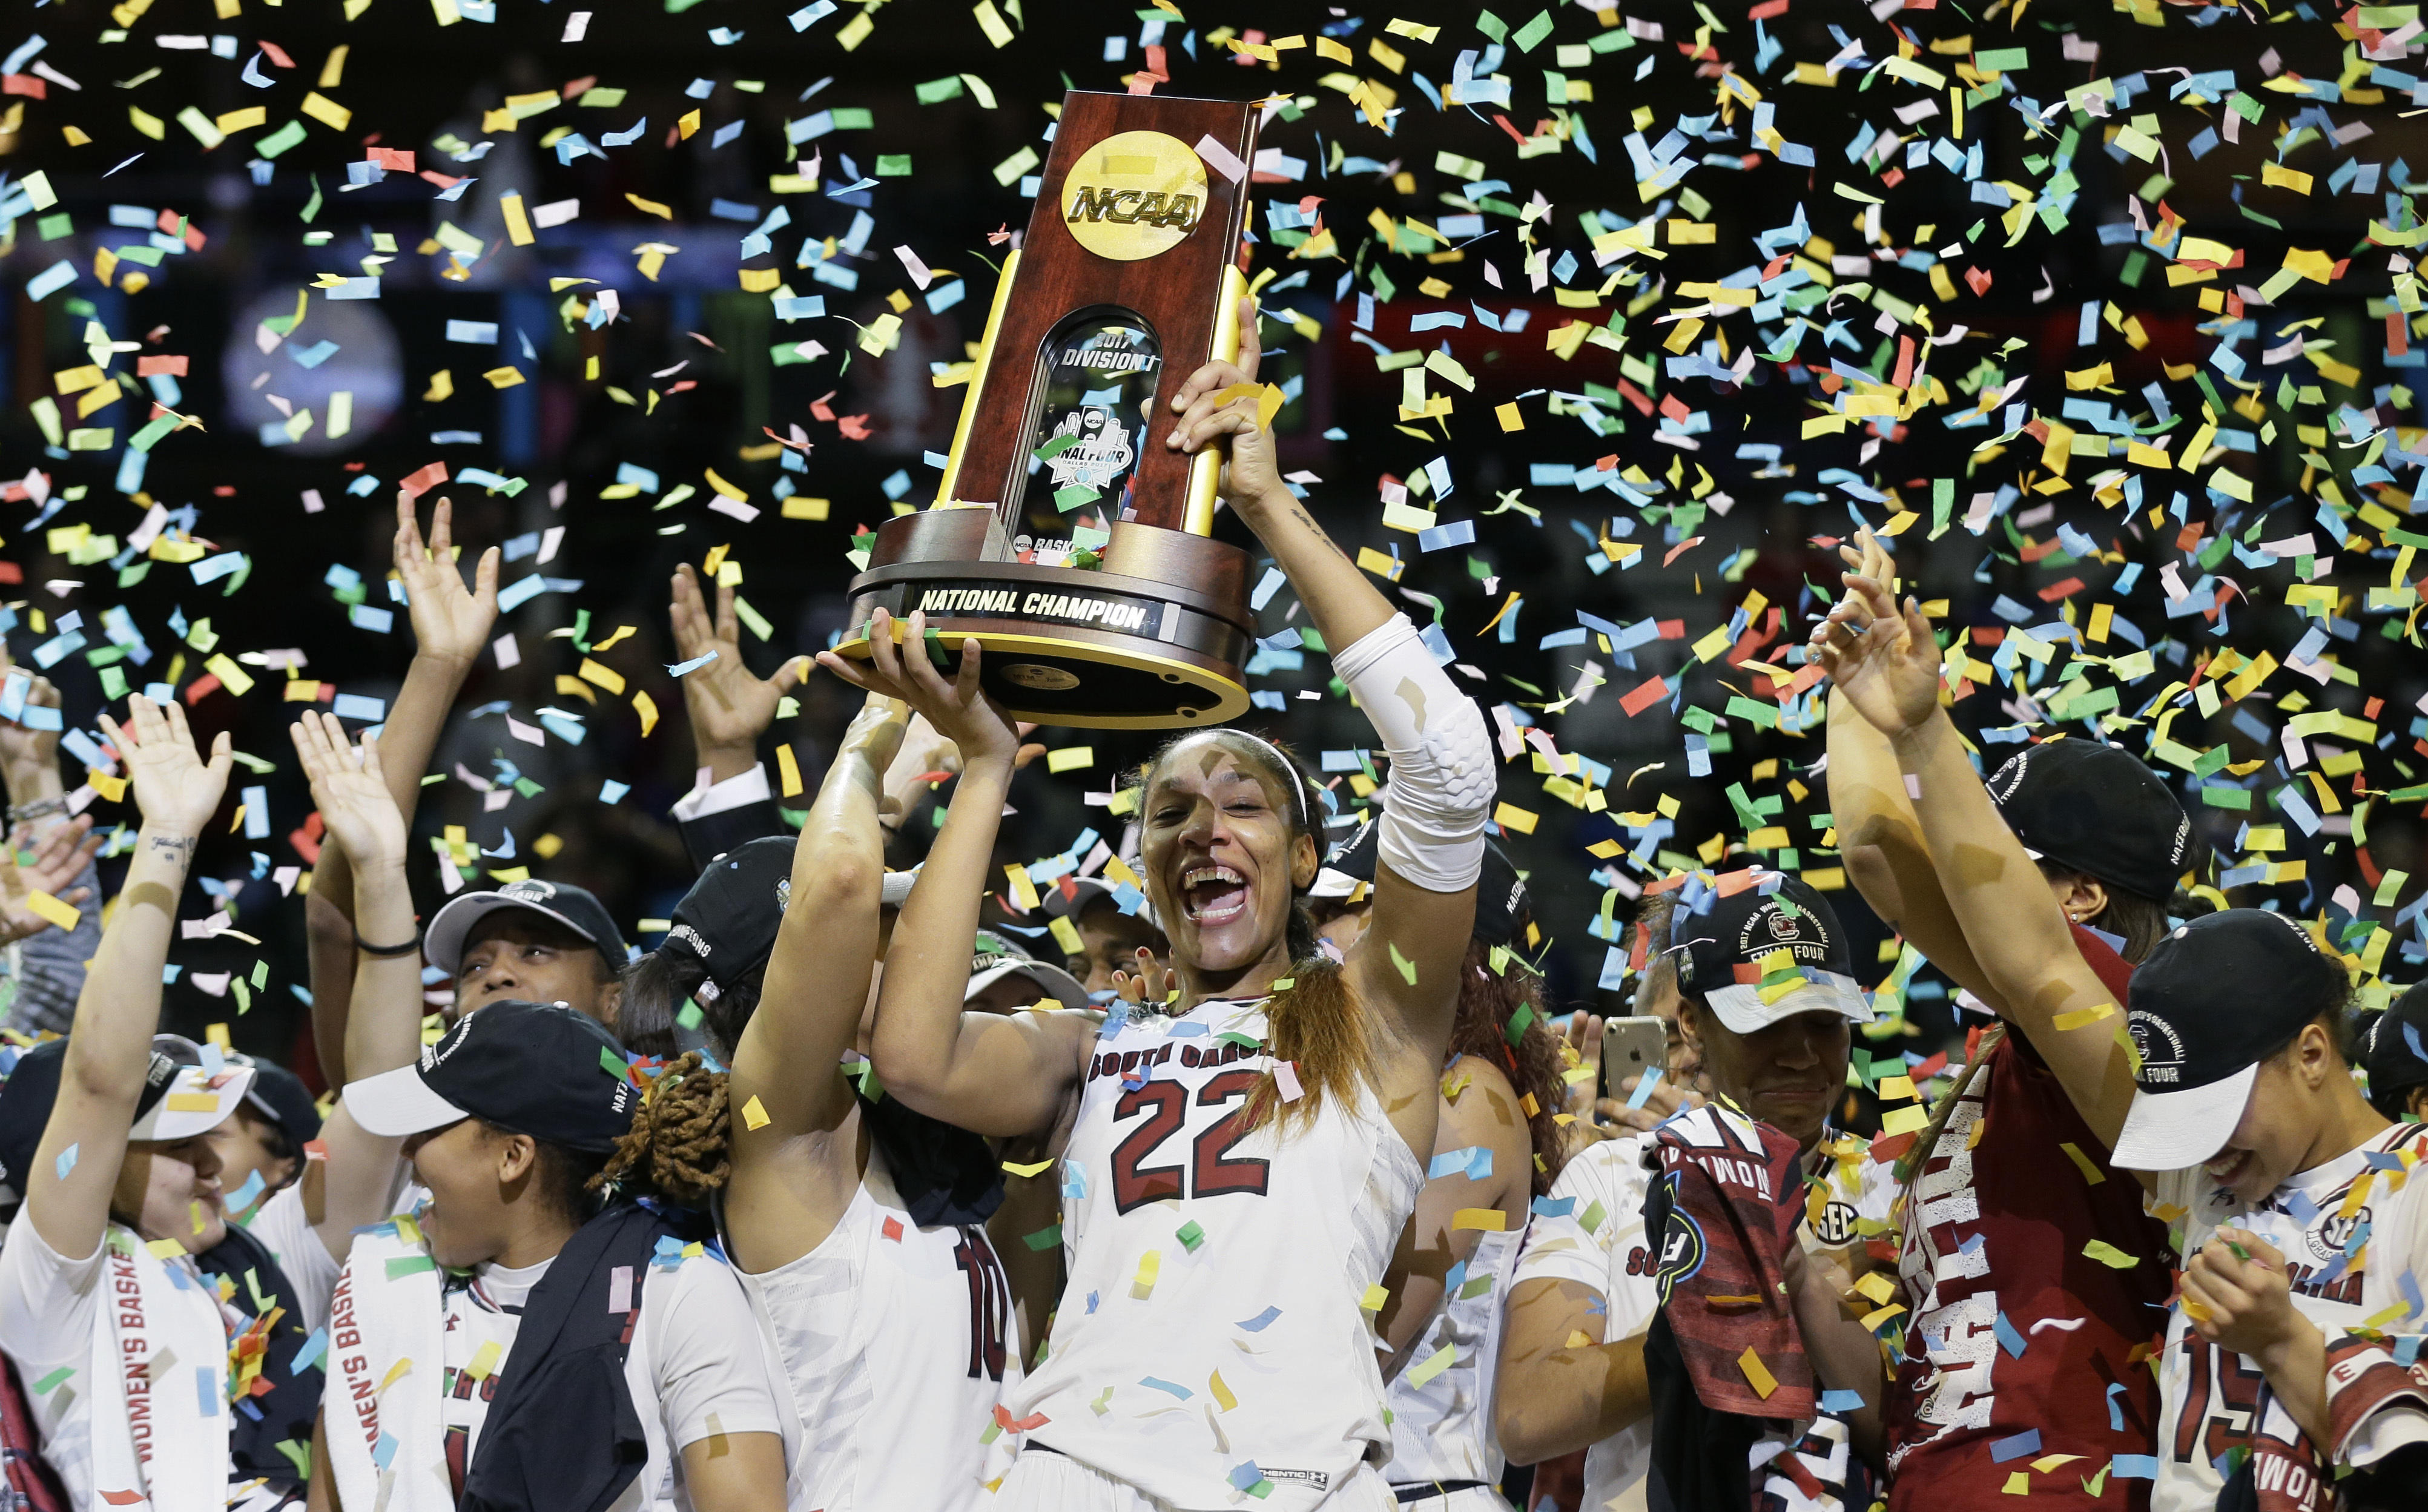 South Carolina upsets Mississippi State 67-55 in first ...